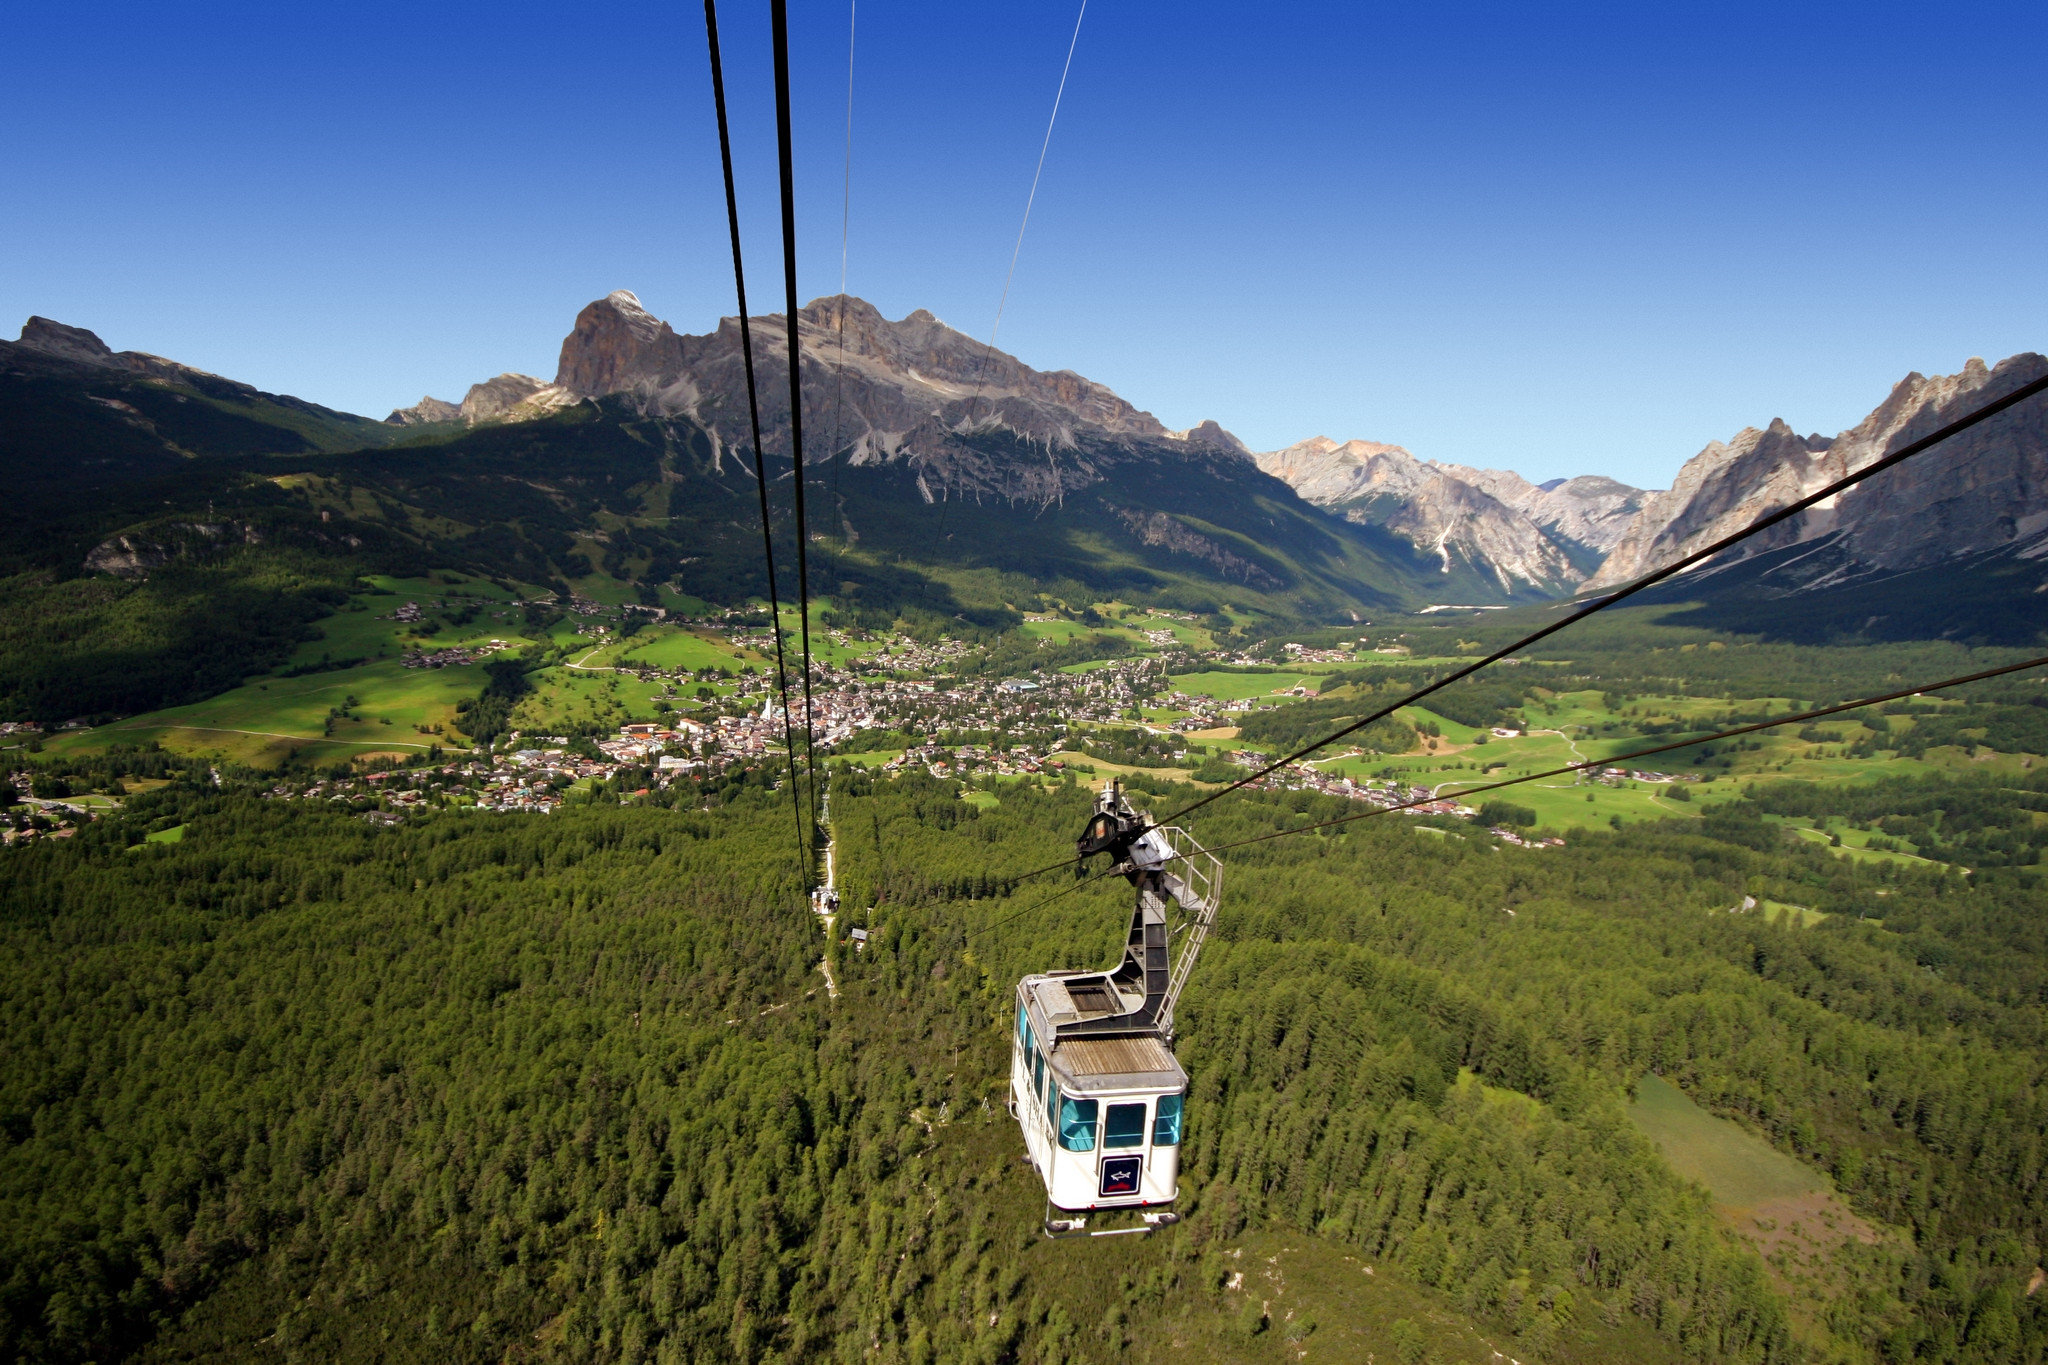 Cableway in Cortina d'Ampezzo to be upgraded ahead of 2026 Winter Olympics